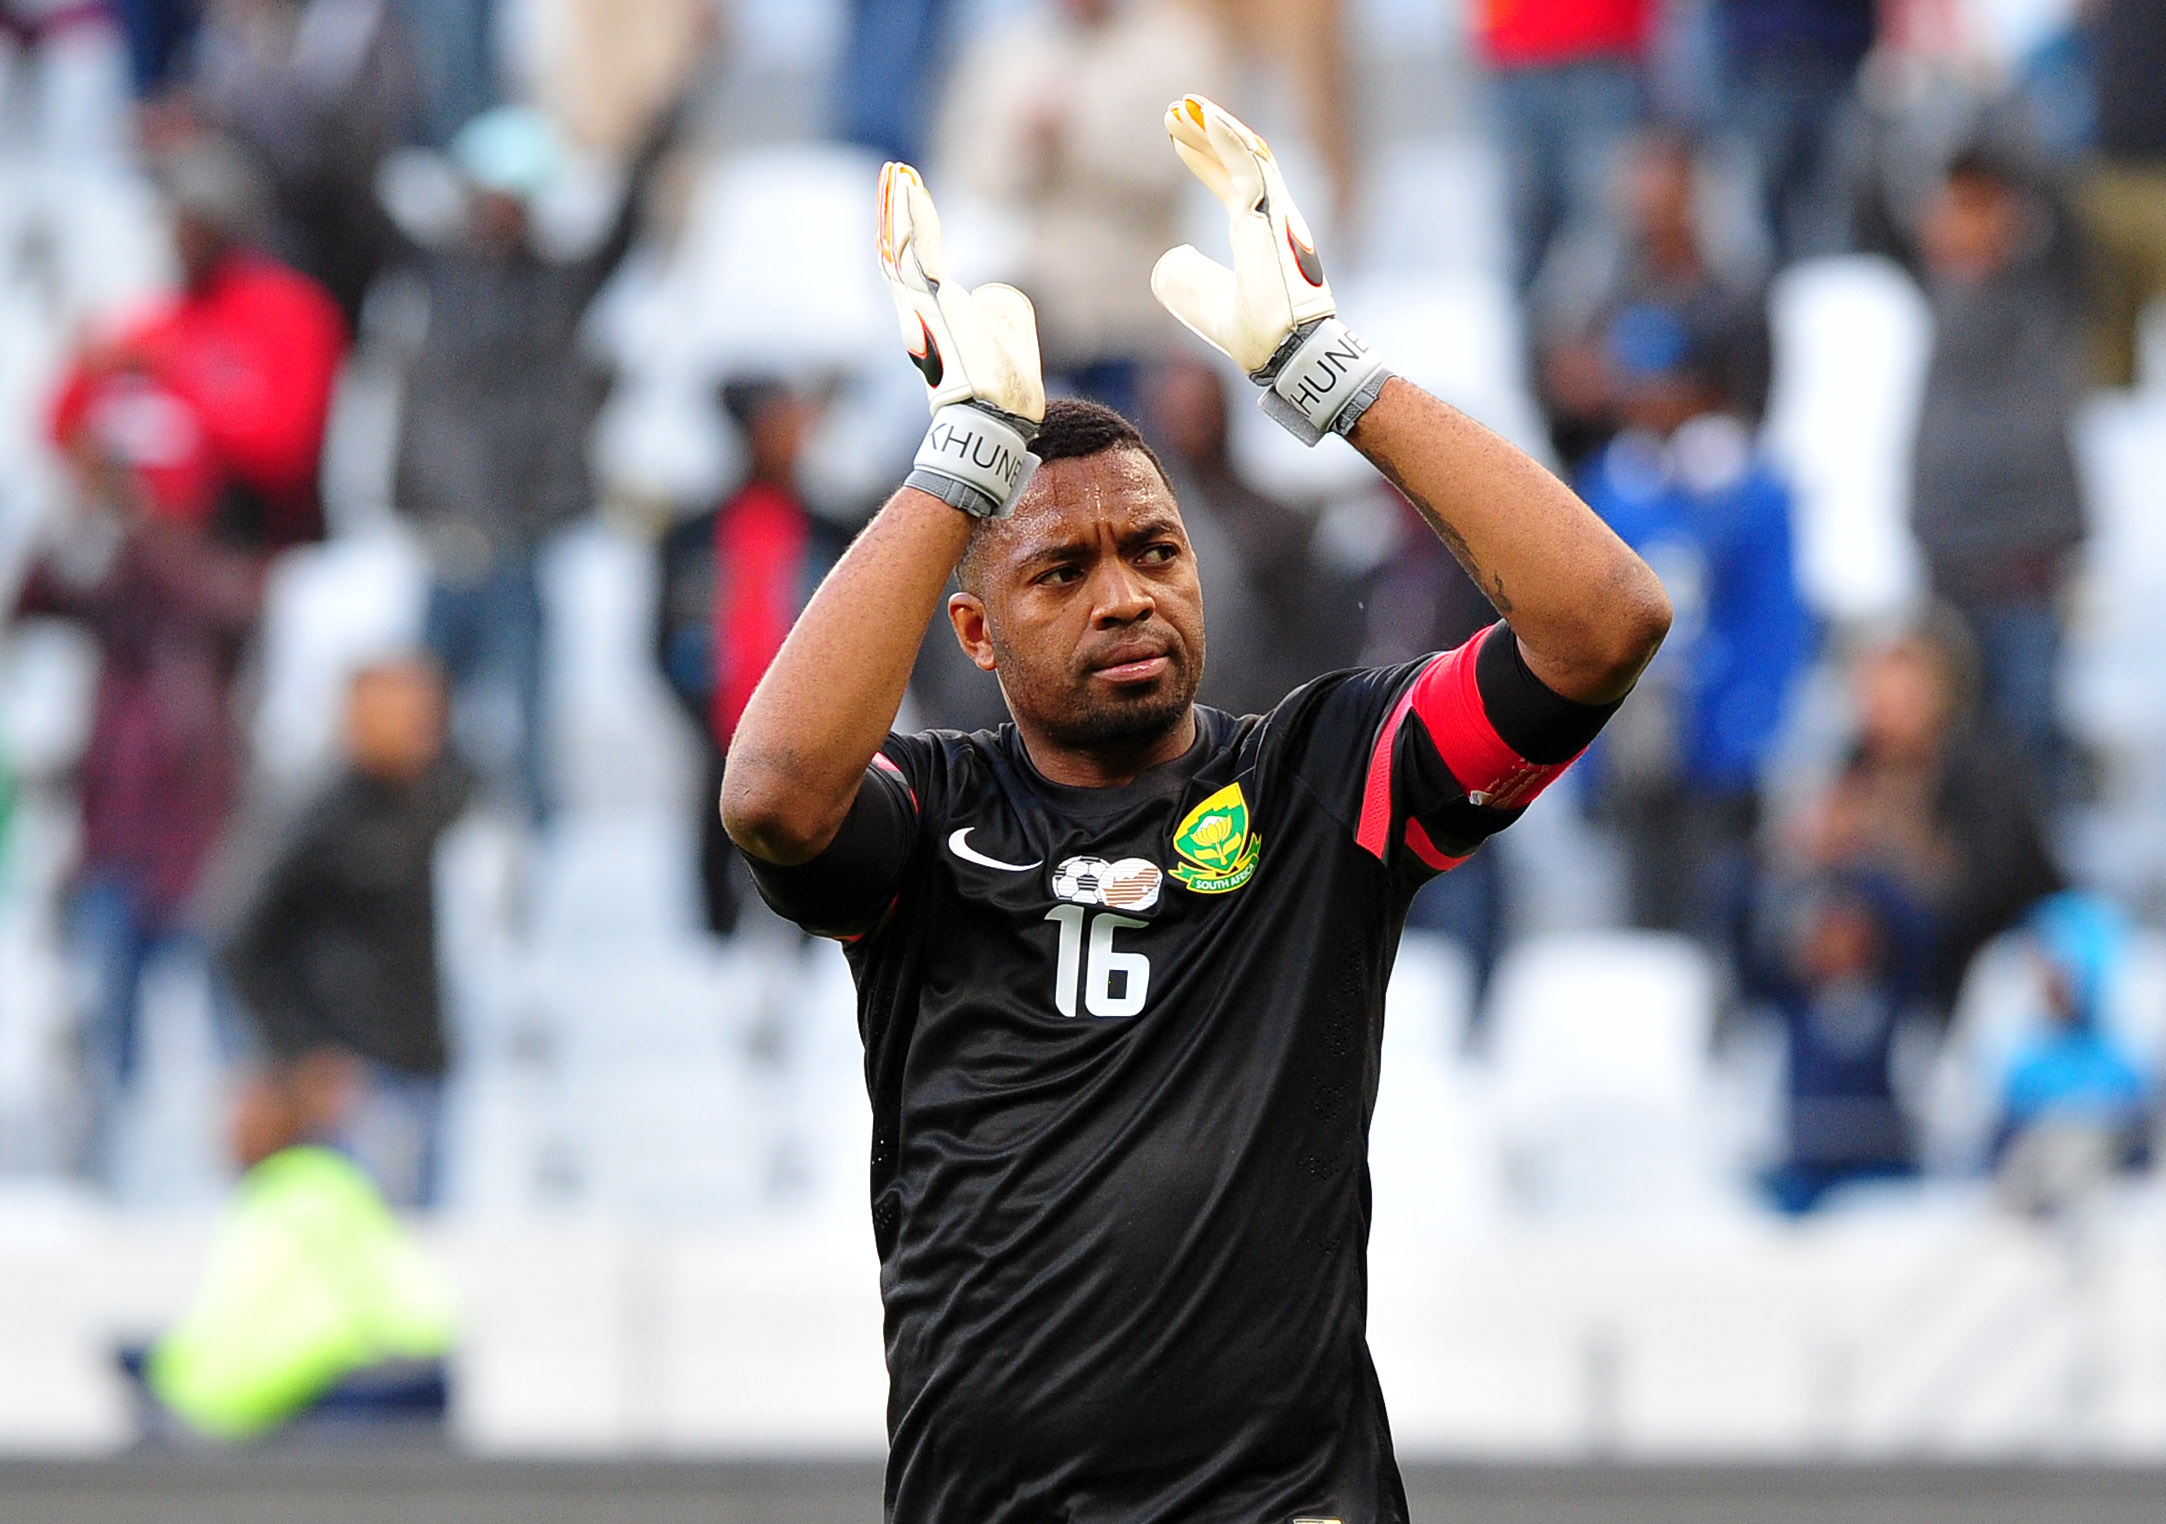 Itumeleng Khune will lead Bafana on his 28th birthday. Pic: Ryan Wilkisky/BackpagePix